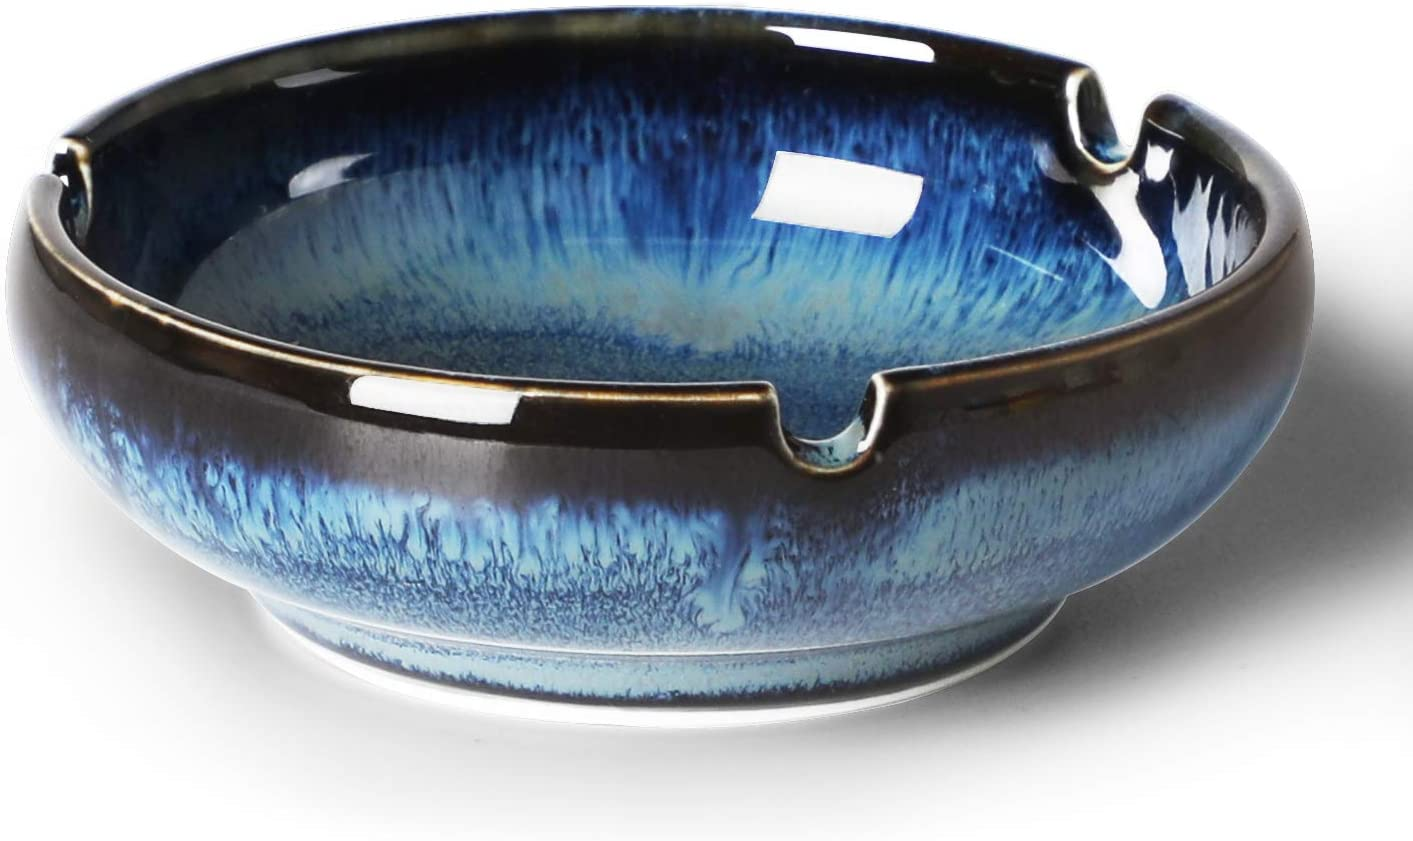 MUZITY Small Ceramic Ashtray Ash Holder for Smokers and Easy to Clean 3.8-Inch Gradient Blue